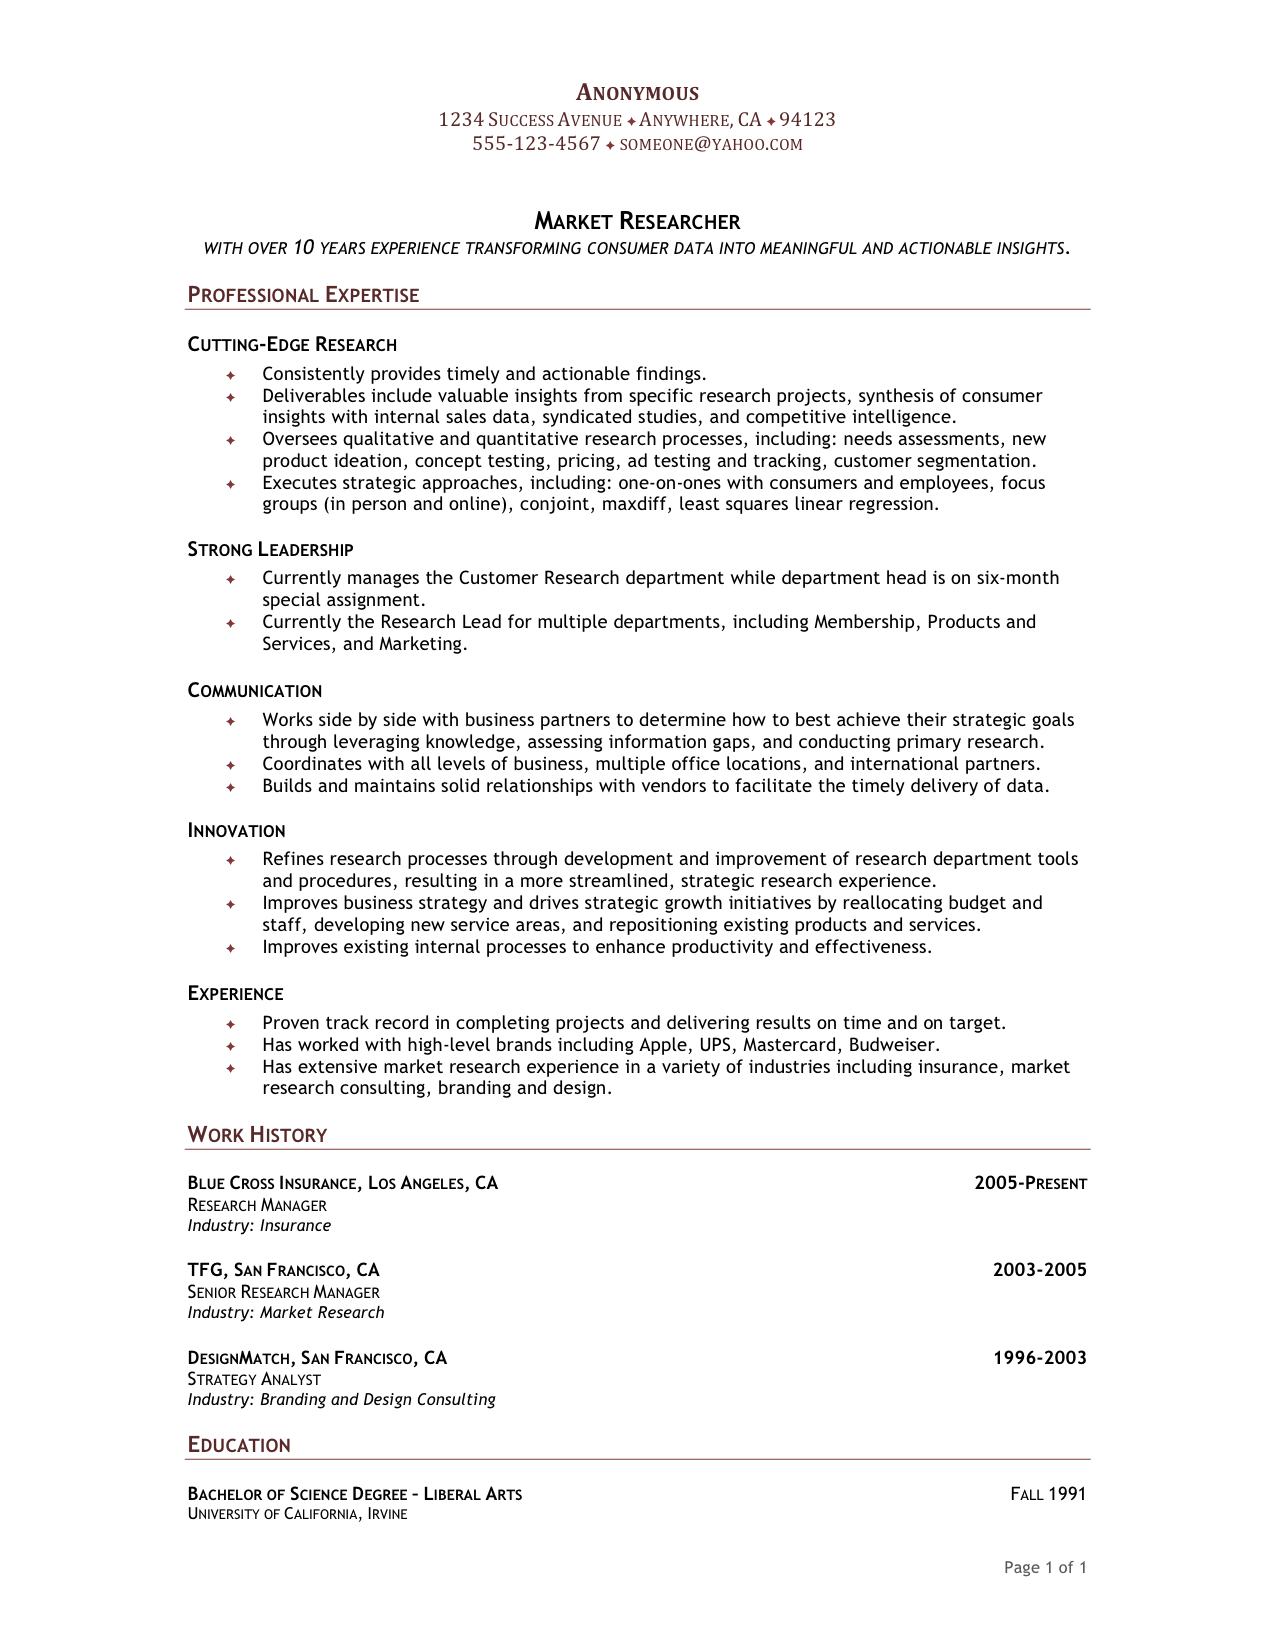 Functional Resume Format  Sample Chronological Resume